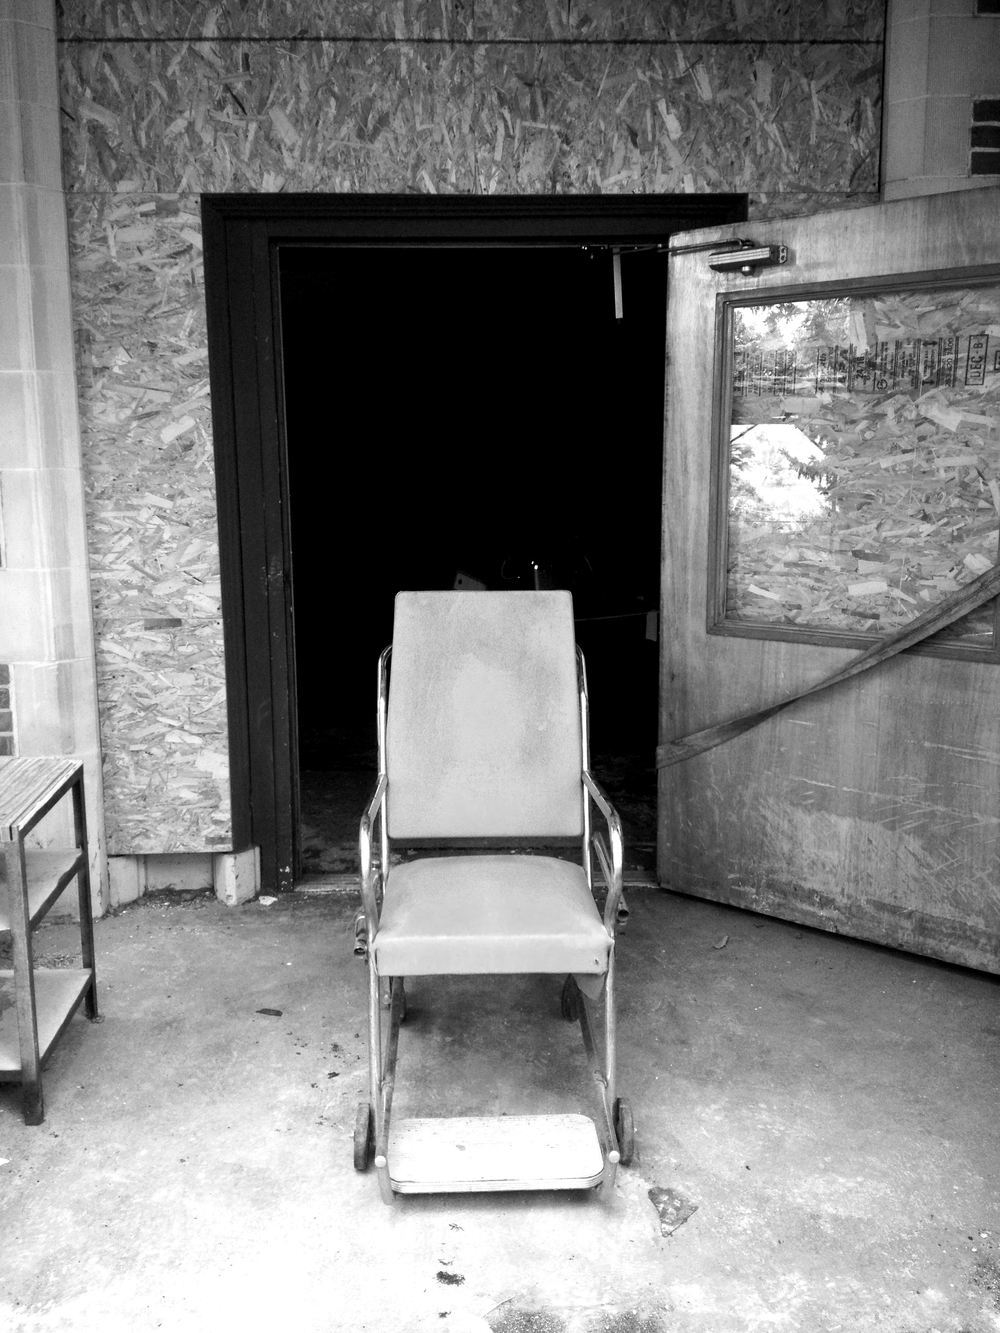 Abby and I took a trip down to Colfax for a day in the summer and snuck around at the abandoned hospital. I ended up shooting a composite sitting in this chair. Sitting in this chair was definitely a surreal experience!